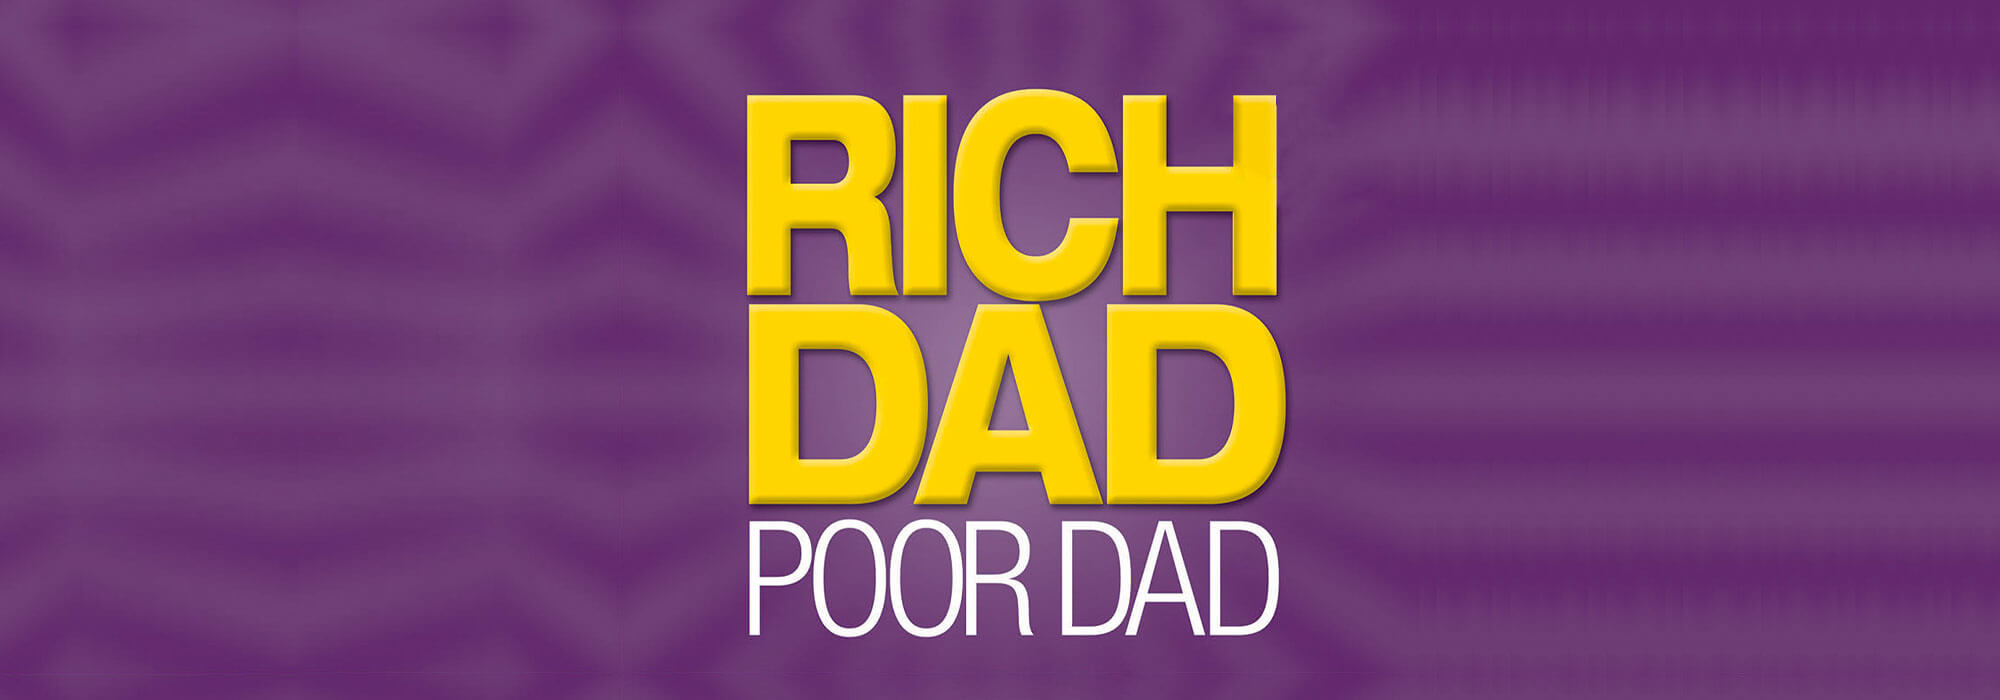 Scotch Parlor Library: Rich Dad Poor Dad